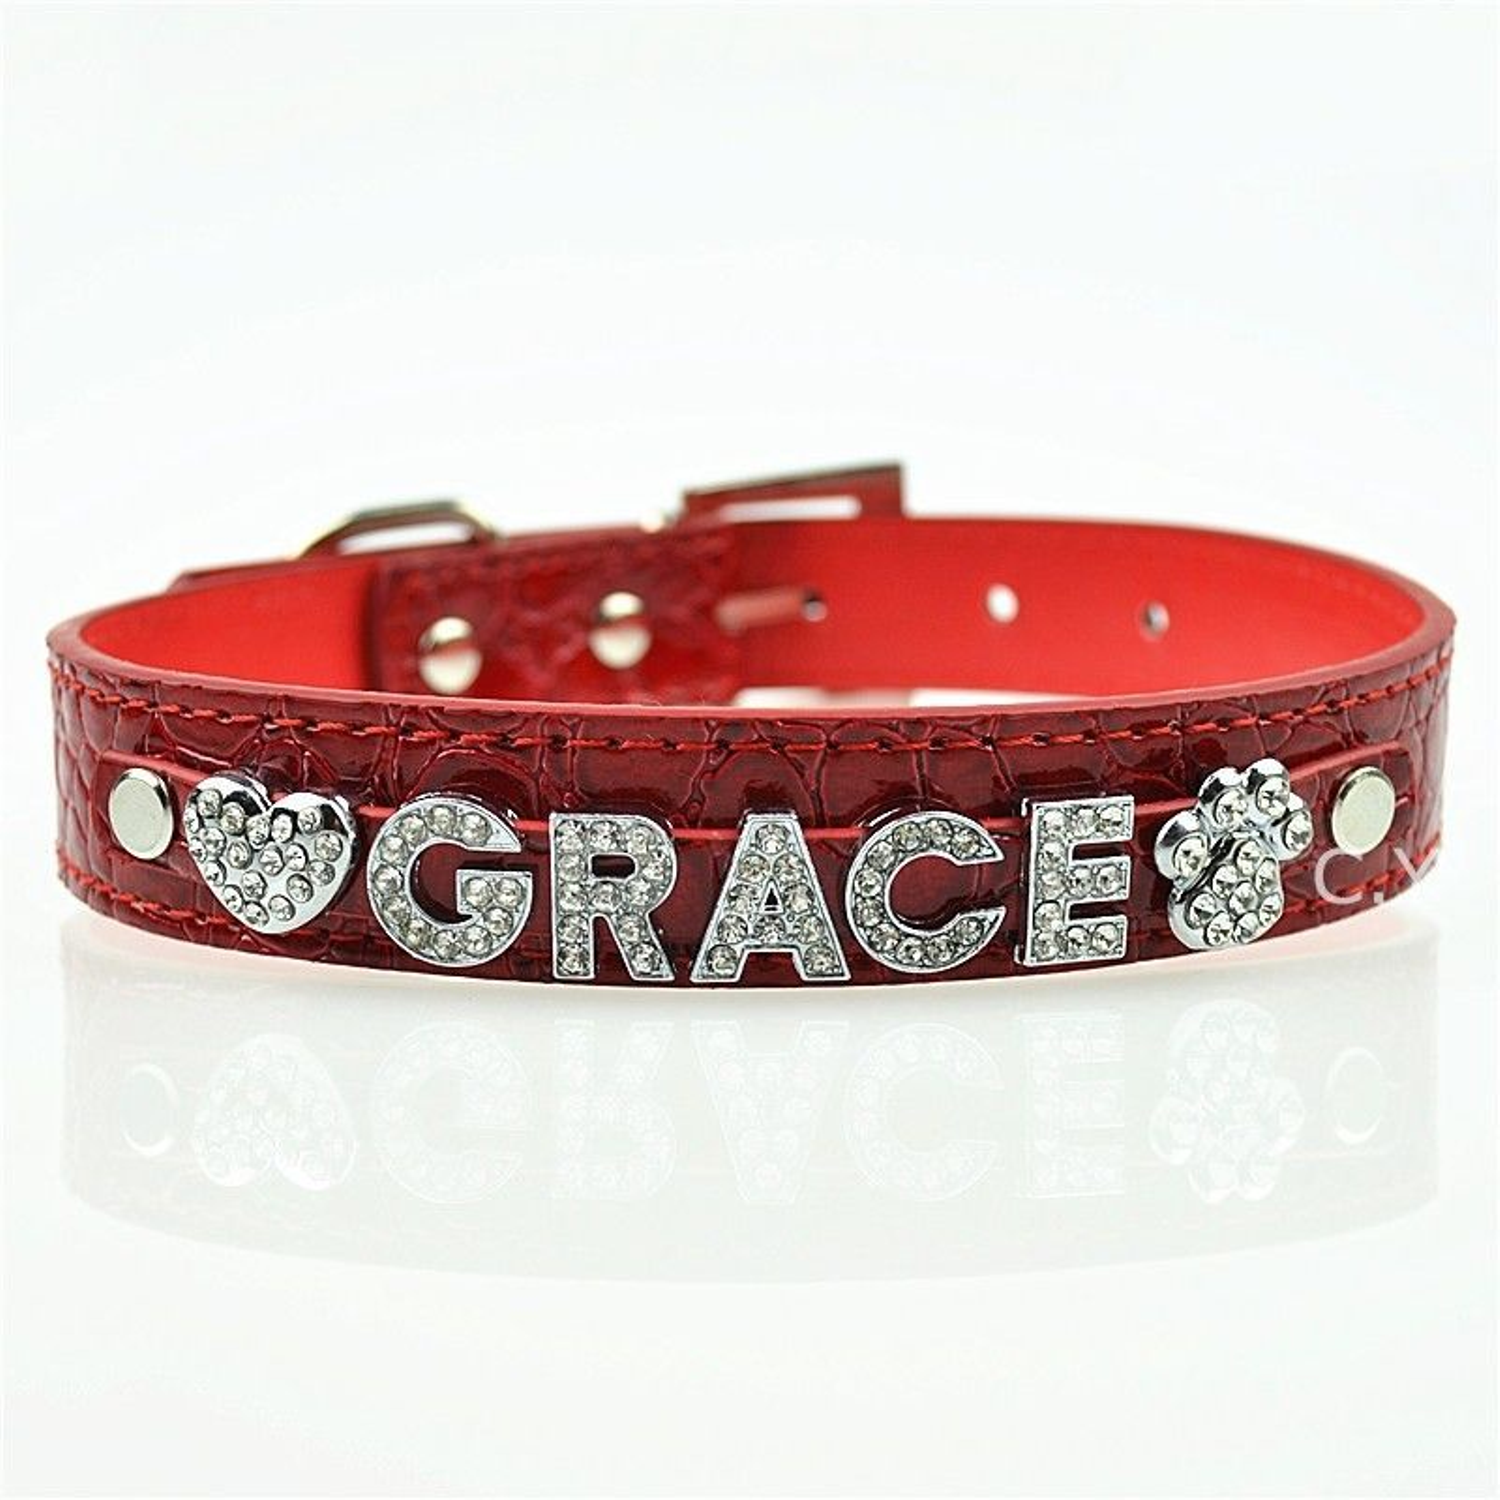 personalized dog collars twin dogs